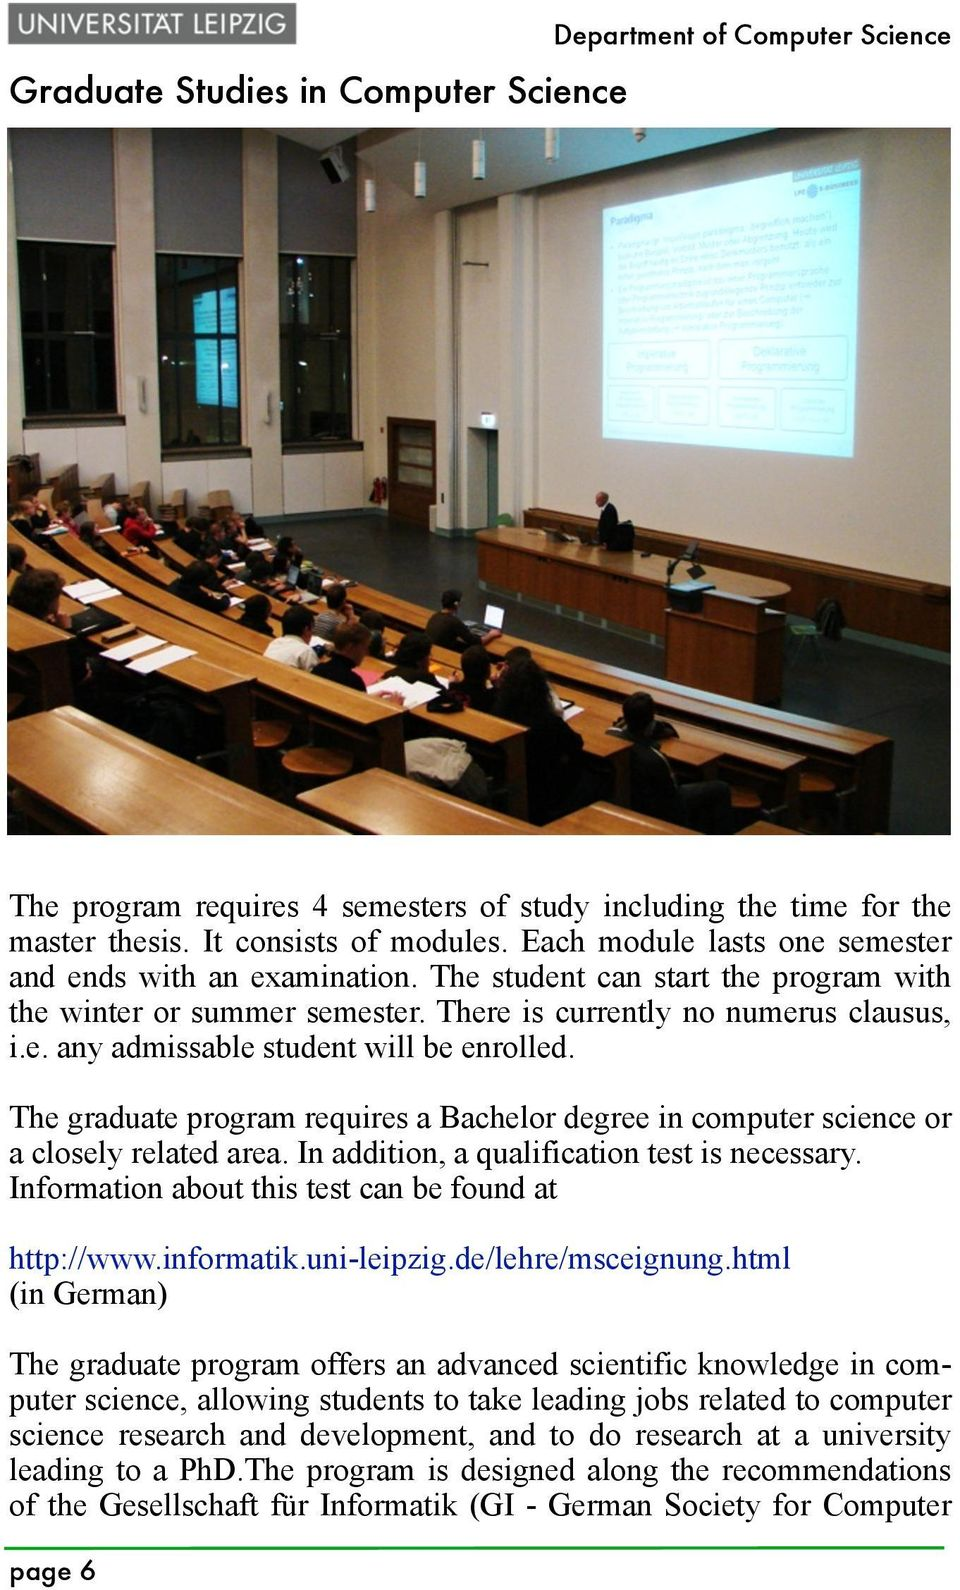 The graduate program requires a Bachelor degree in computer science or a closely related area. In addition, a qualification test is necessary. Information about this test can be found at http://www.